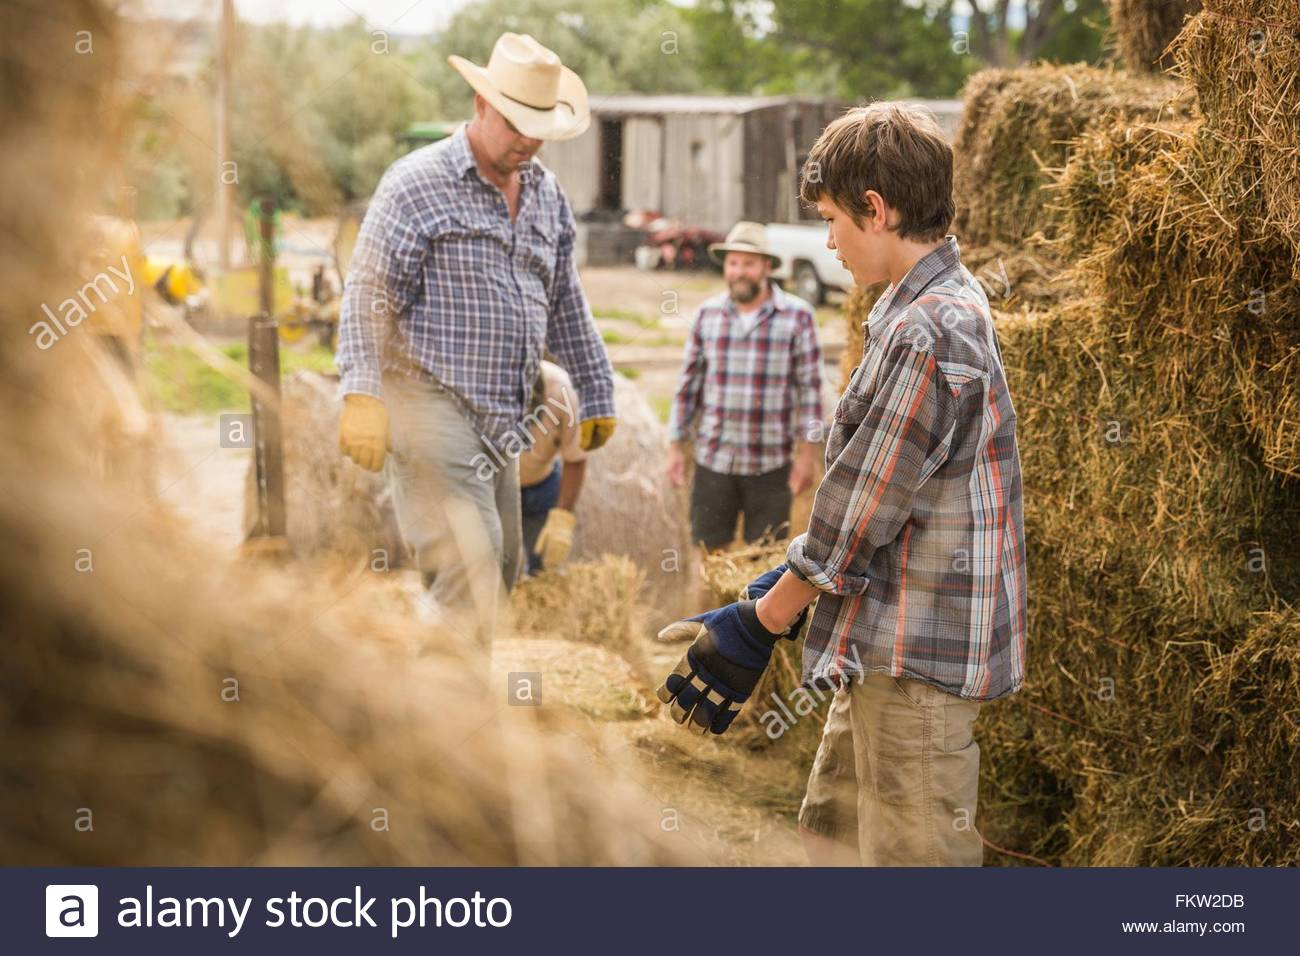 Mature men and boy on farm moving hay bales - Stock Image